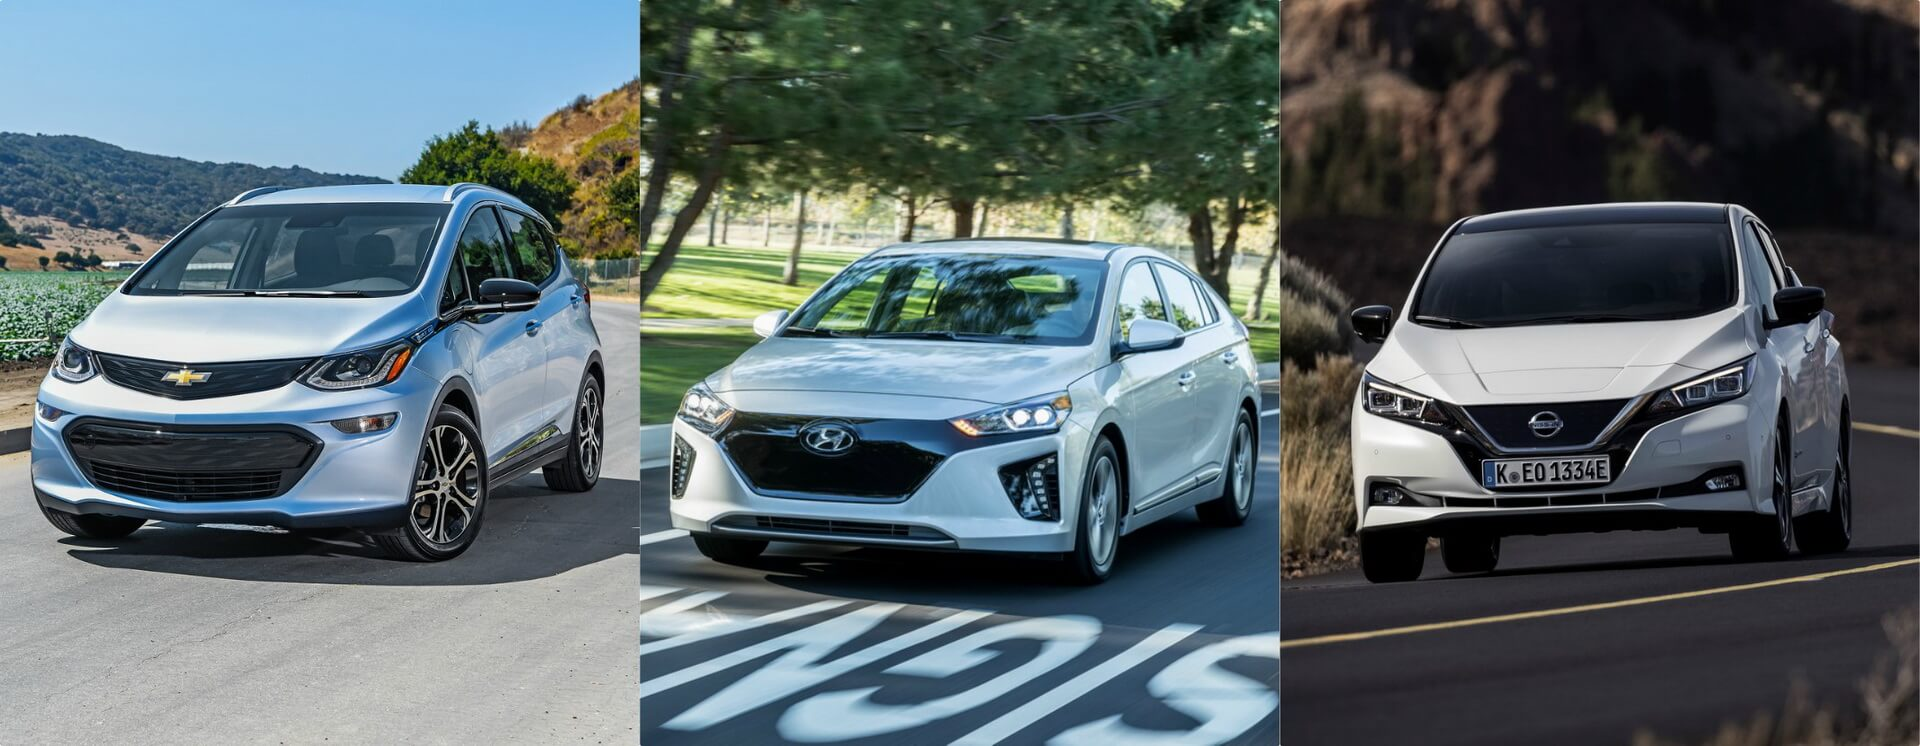 Chevy Bolt EV — Hyundai Ioniq Electric — Nissan Leaf 2018